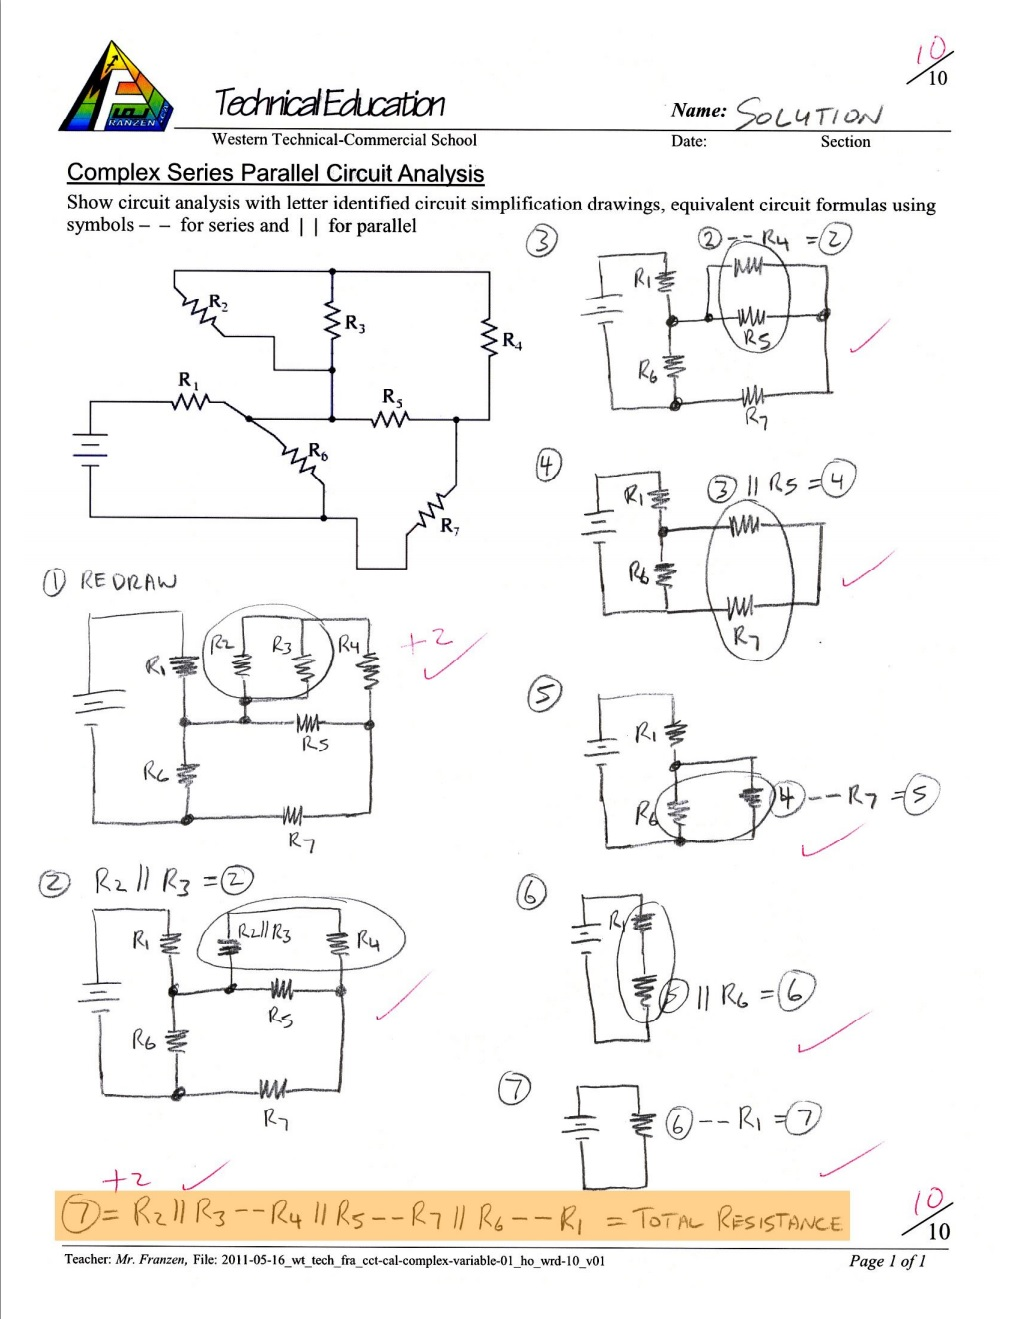 Unit 1 Computer Engineering Technology Robotics And Control Systems Parallel Circuit Diagram Complex Series Analysis Calculations